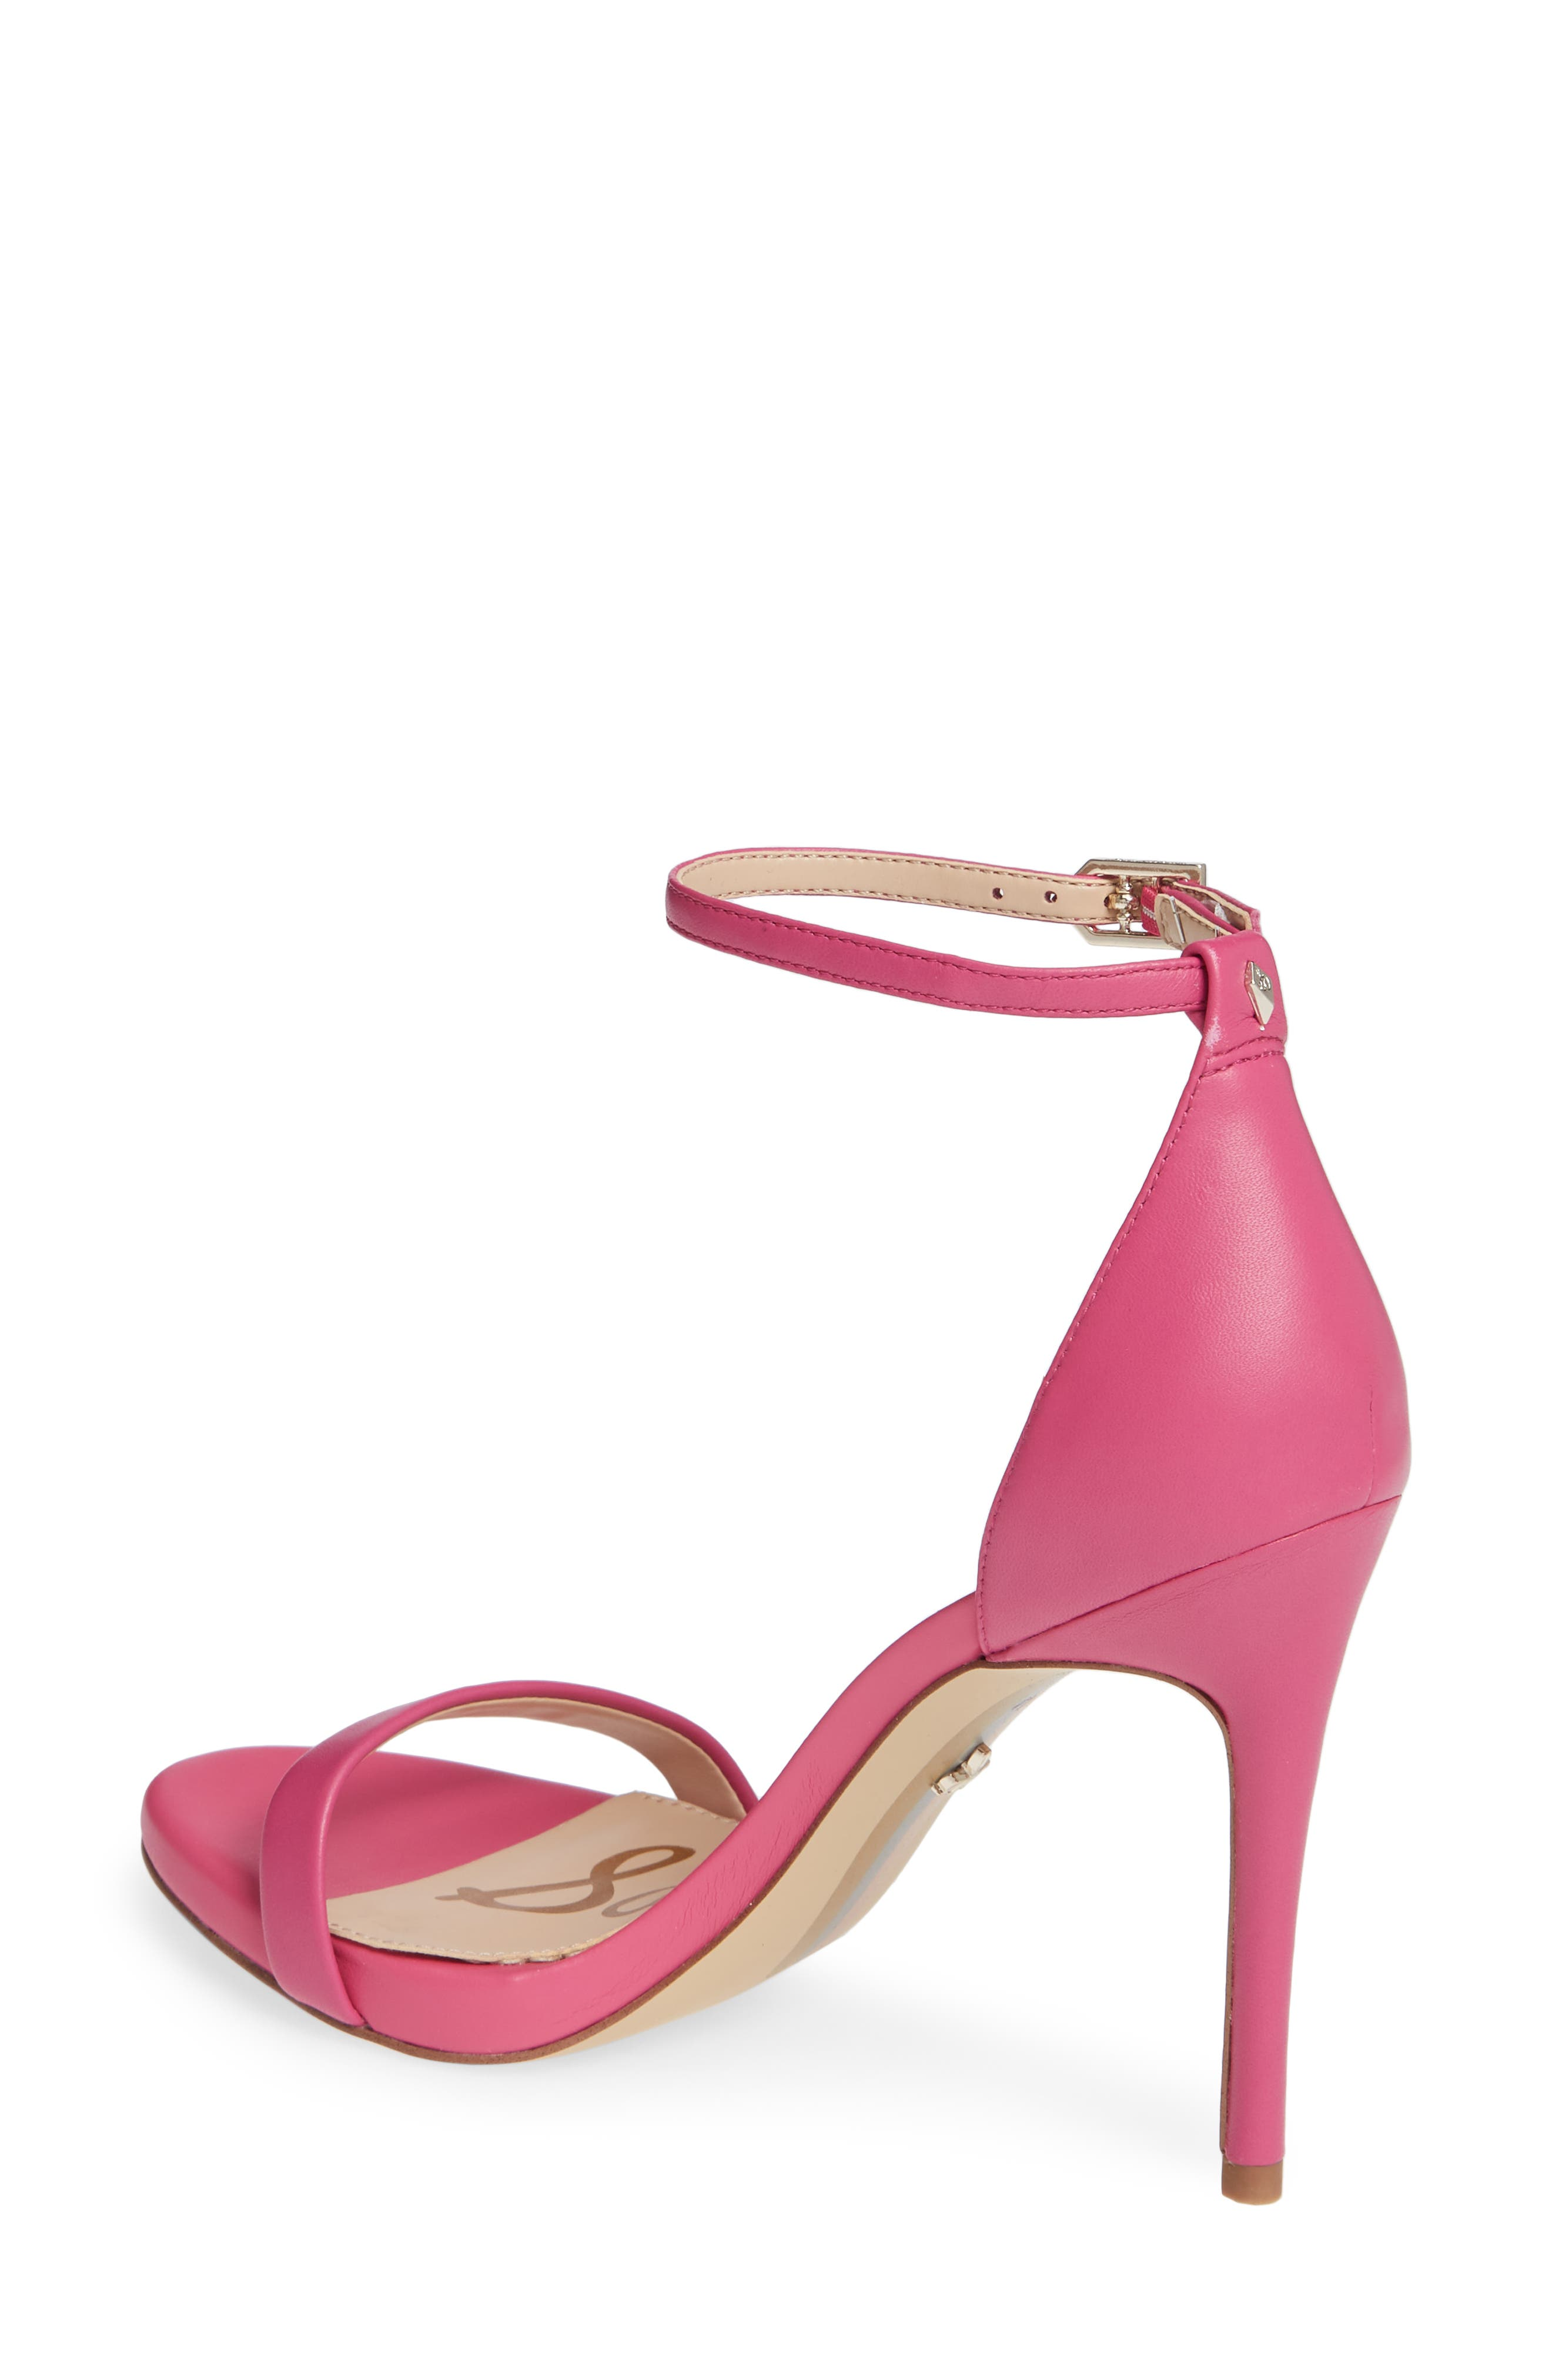 Ariella Ankle Strap Sandal,                             Alternate thumbnail 2, color,                             RETRO PINK LEATHER